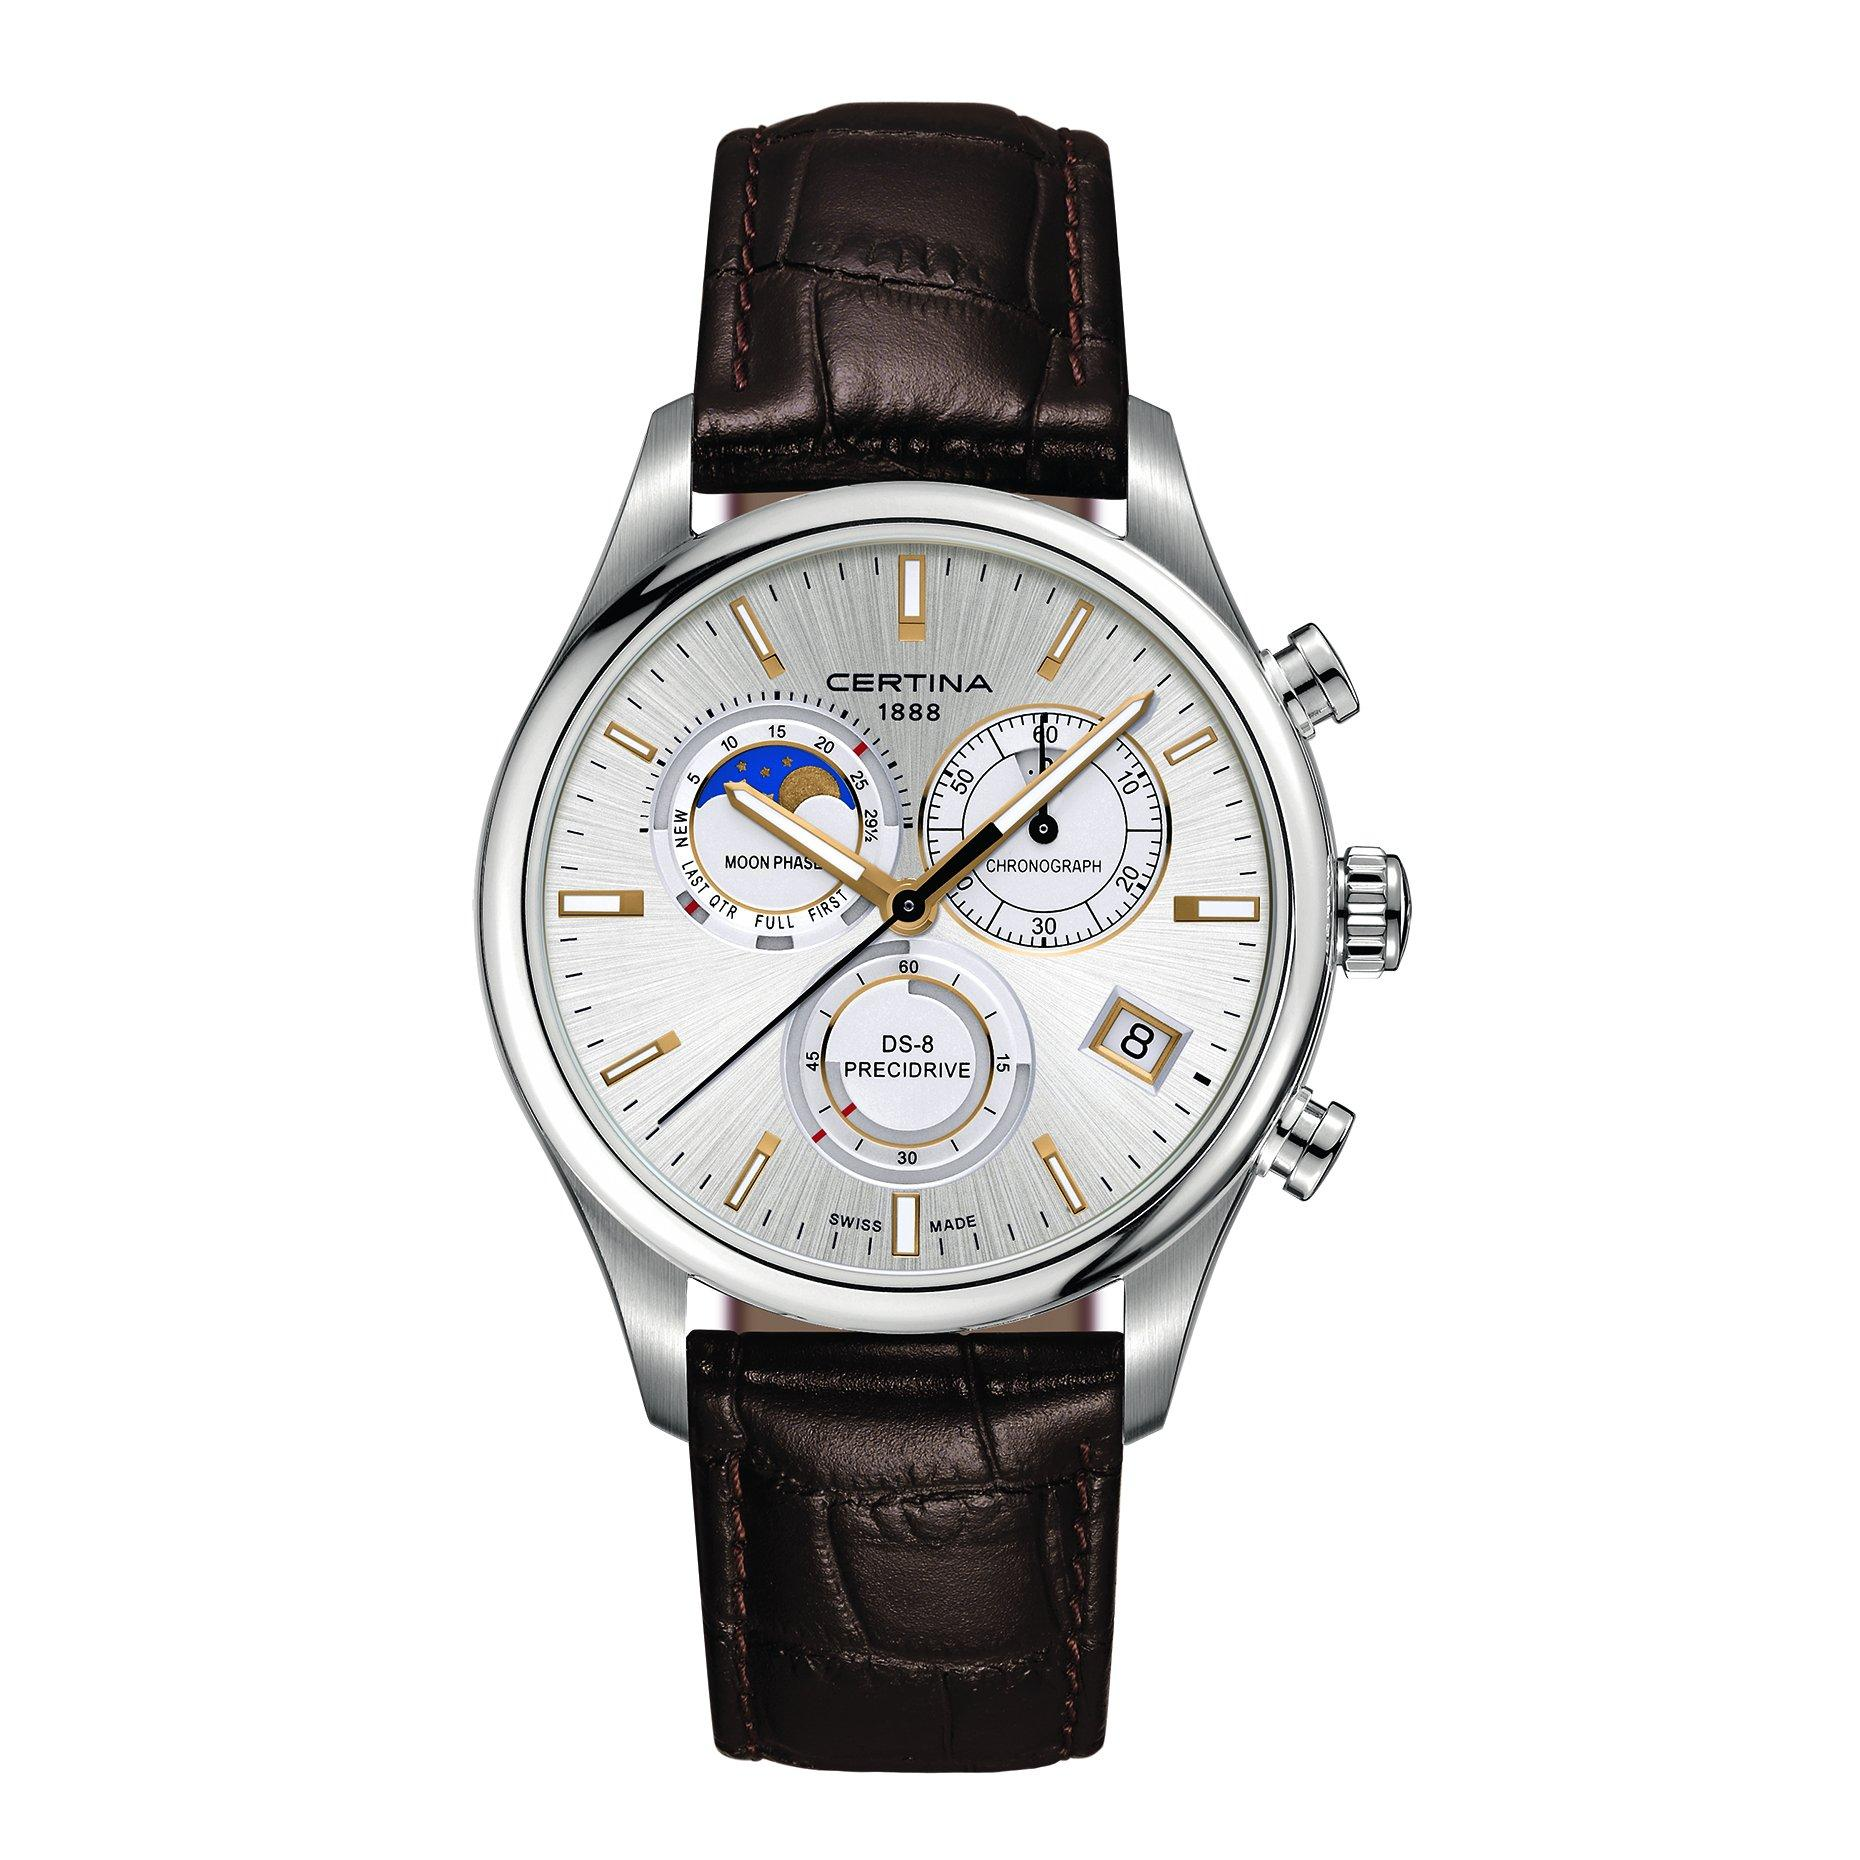 Certina DS-8 Precidrive Moonphase Chronograph Men's Watch